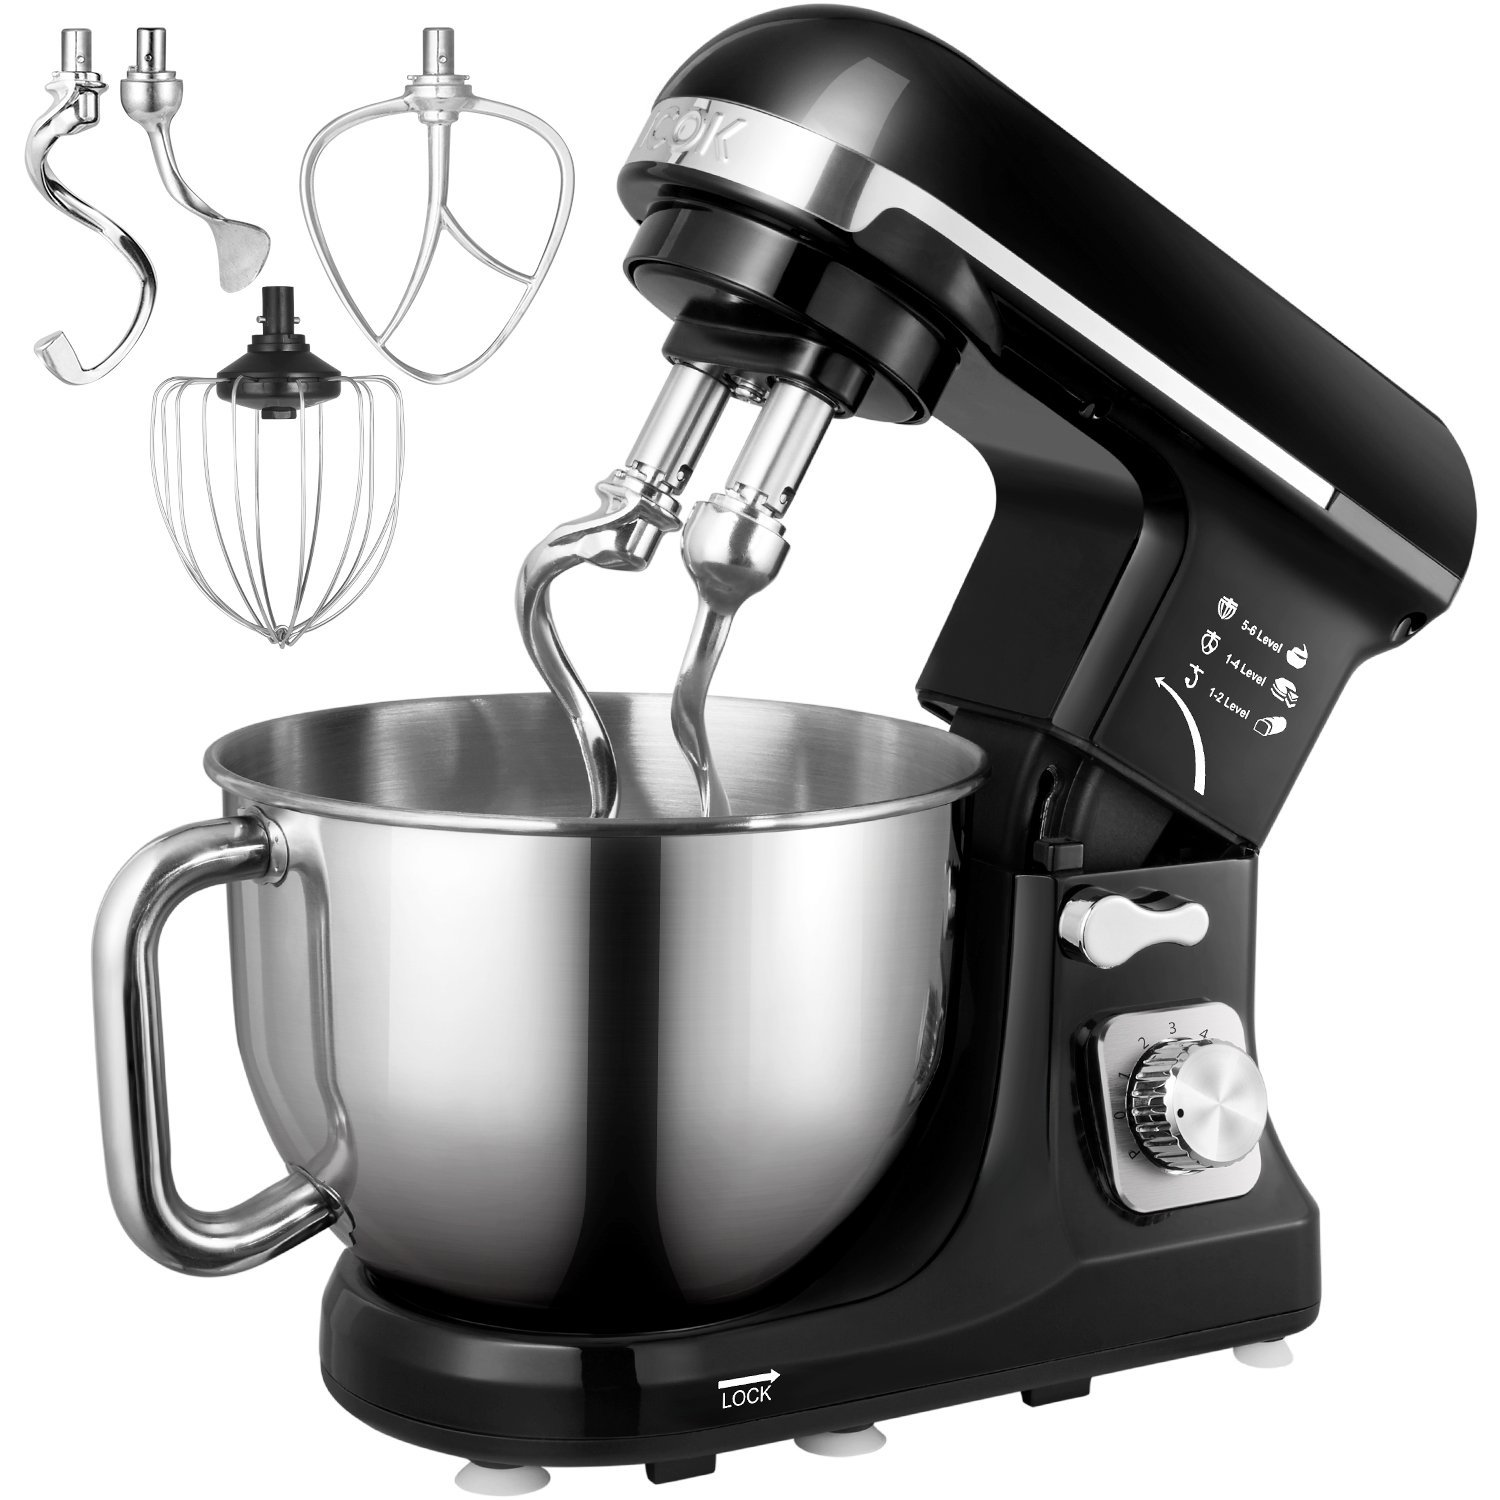 Stand Mixer, Aicok 5-Quart 500-Watt 6-Speed Dough Mixer with Stainless Steel Bowl, Tilt-Head Food Mixer, Kitchen Electric Mixer with Double Dough Hooks, Whisk, Beater, Pouring Shield, Black